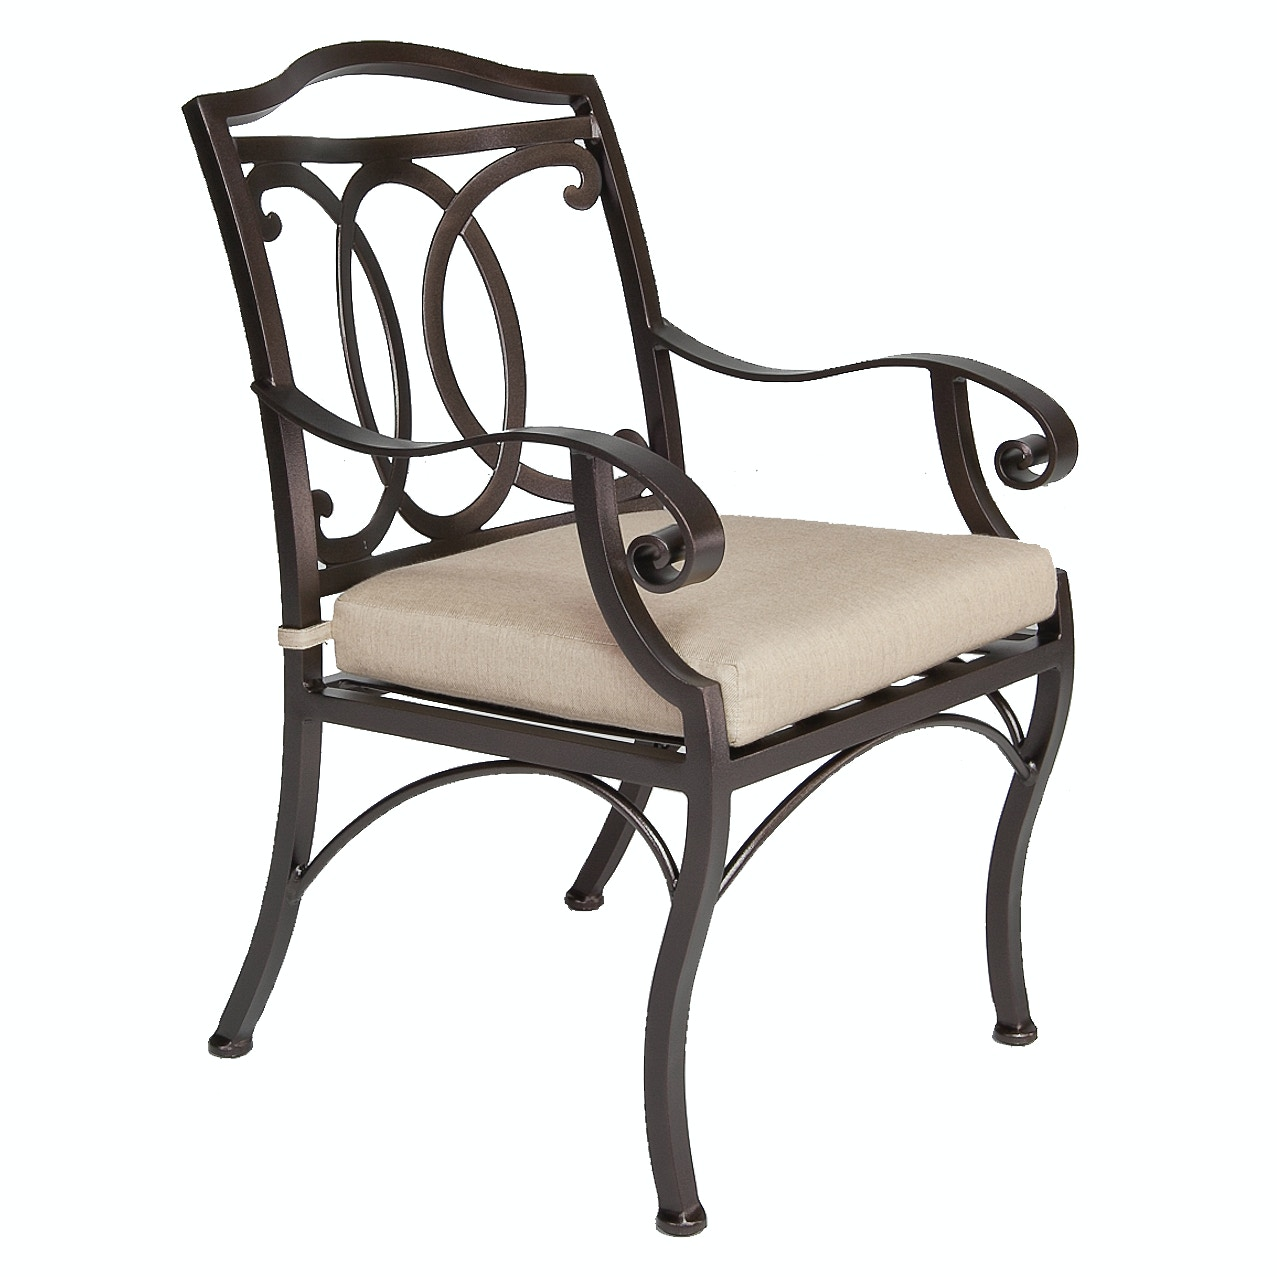 OW Lee Furniture Palisades Dining Arm Chair 4653 A